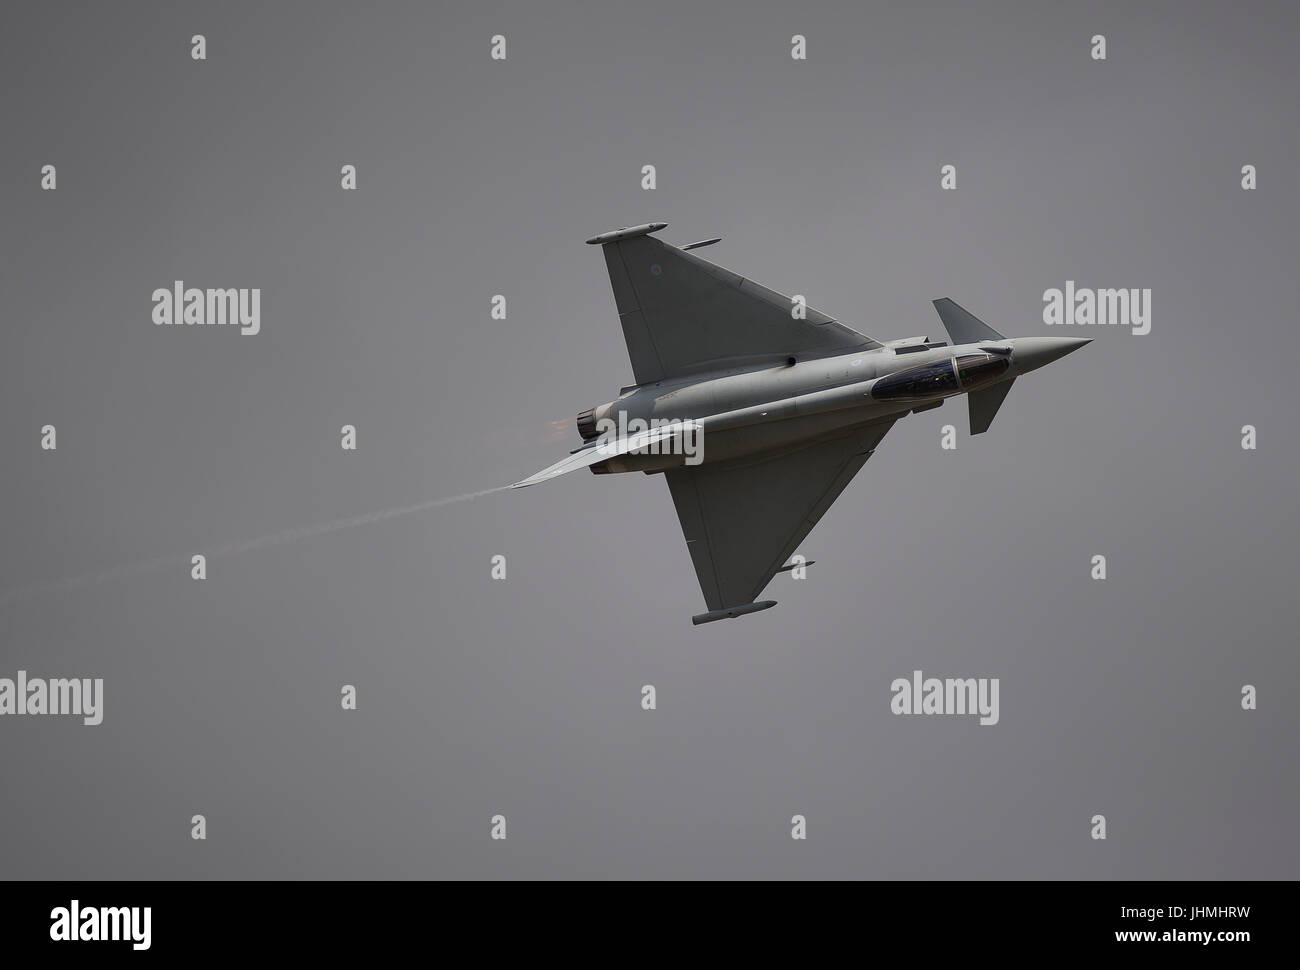 RAF Fairford, Gloucestershire, UK. 14th July 2017. First day of the Royal International Air Tattoo (RIAT), one of - Stock Image